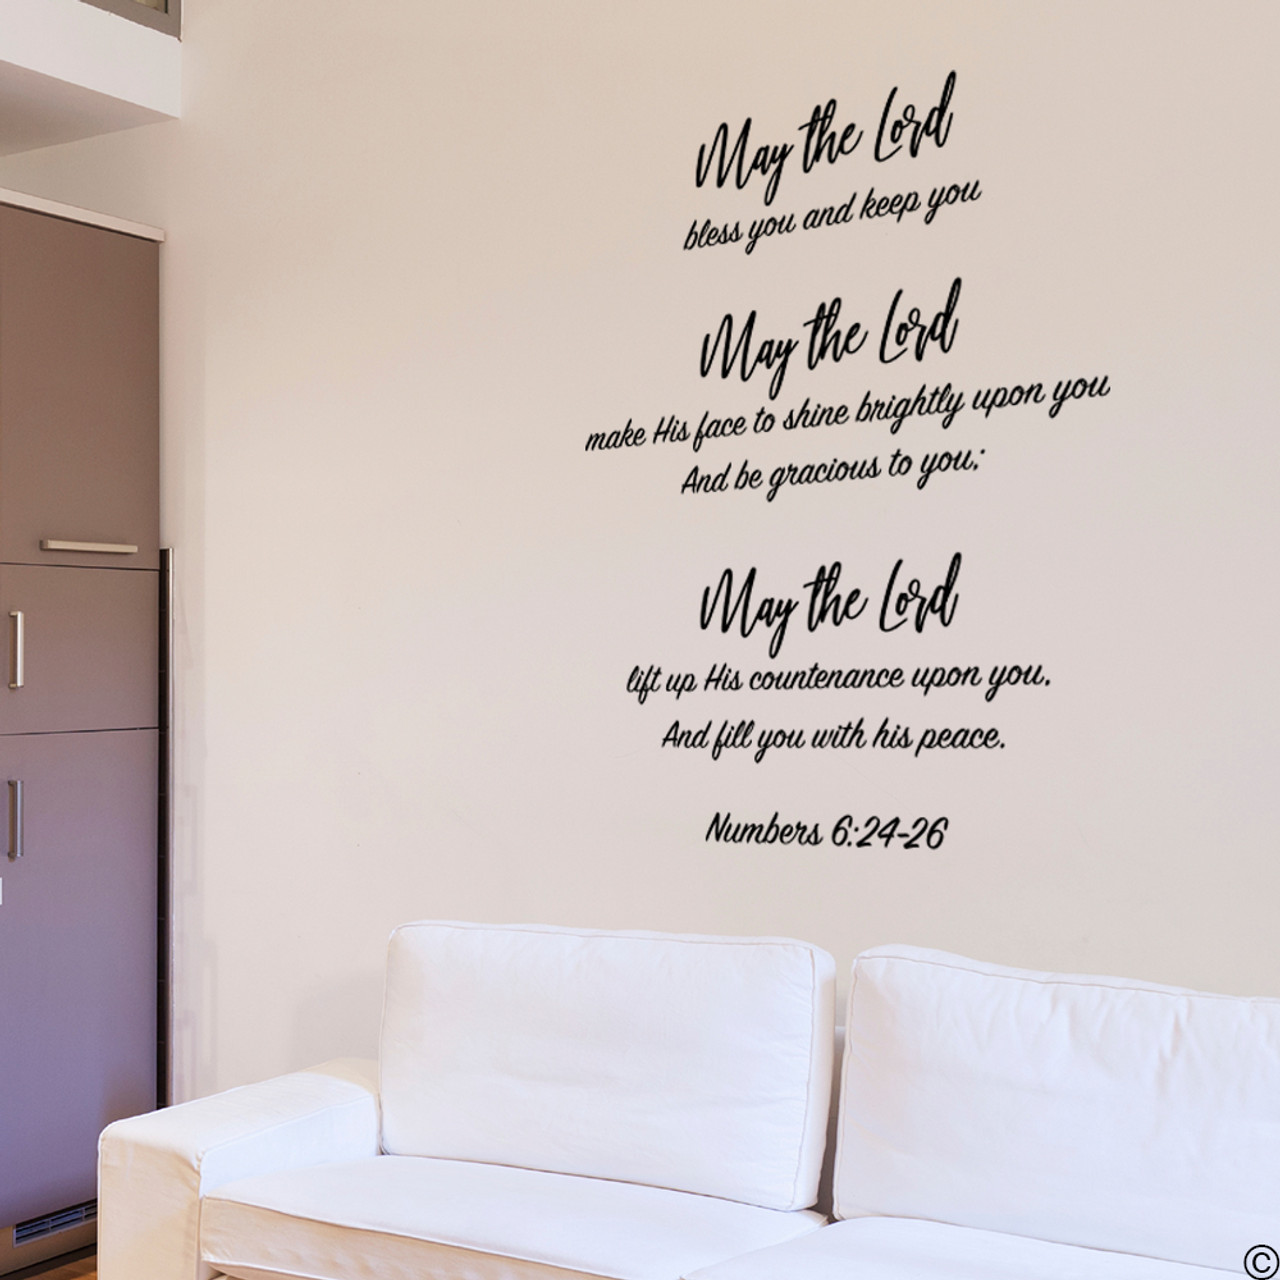 Numbers 6:24-26 vinyl wall decal quote in black